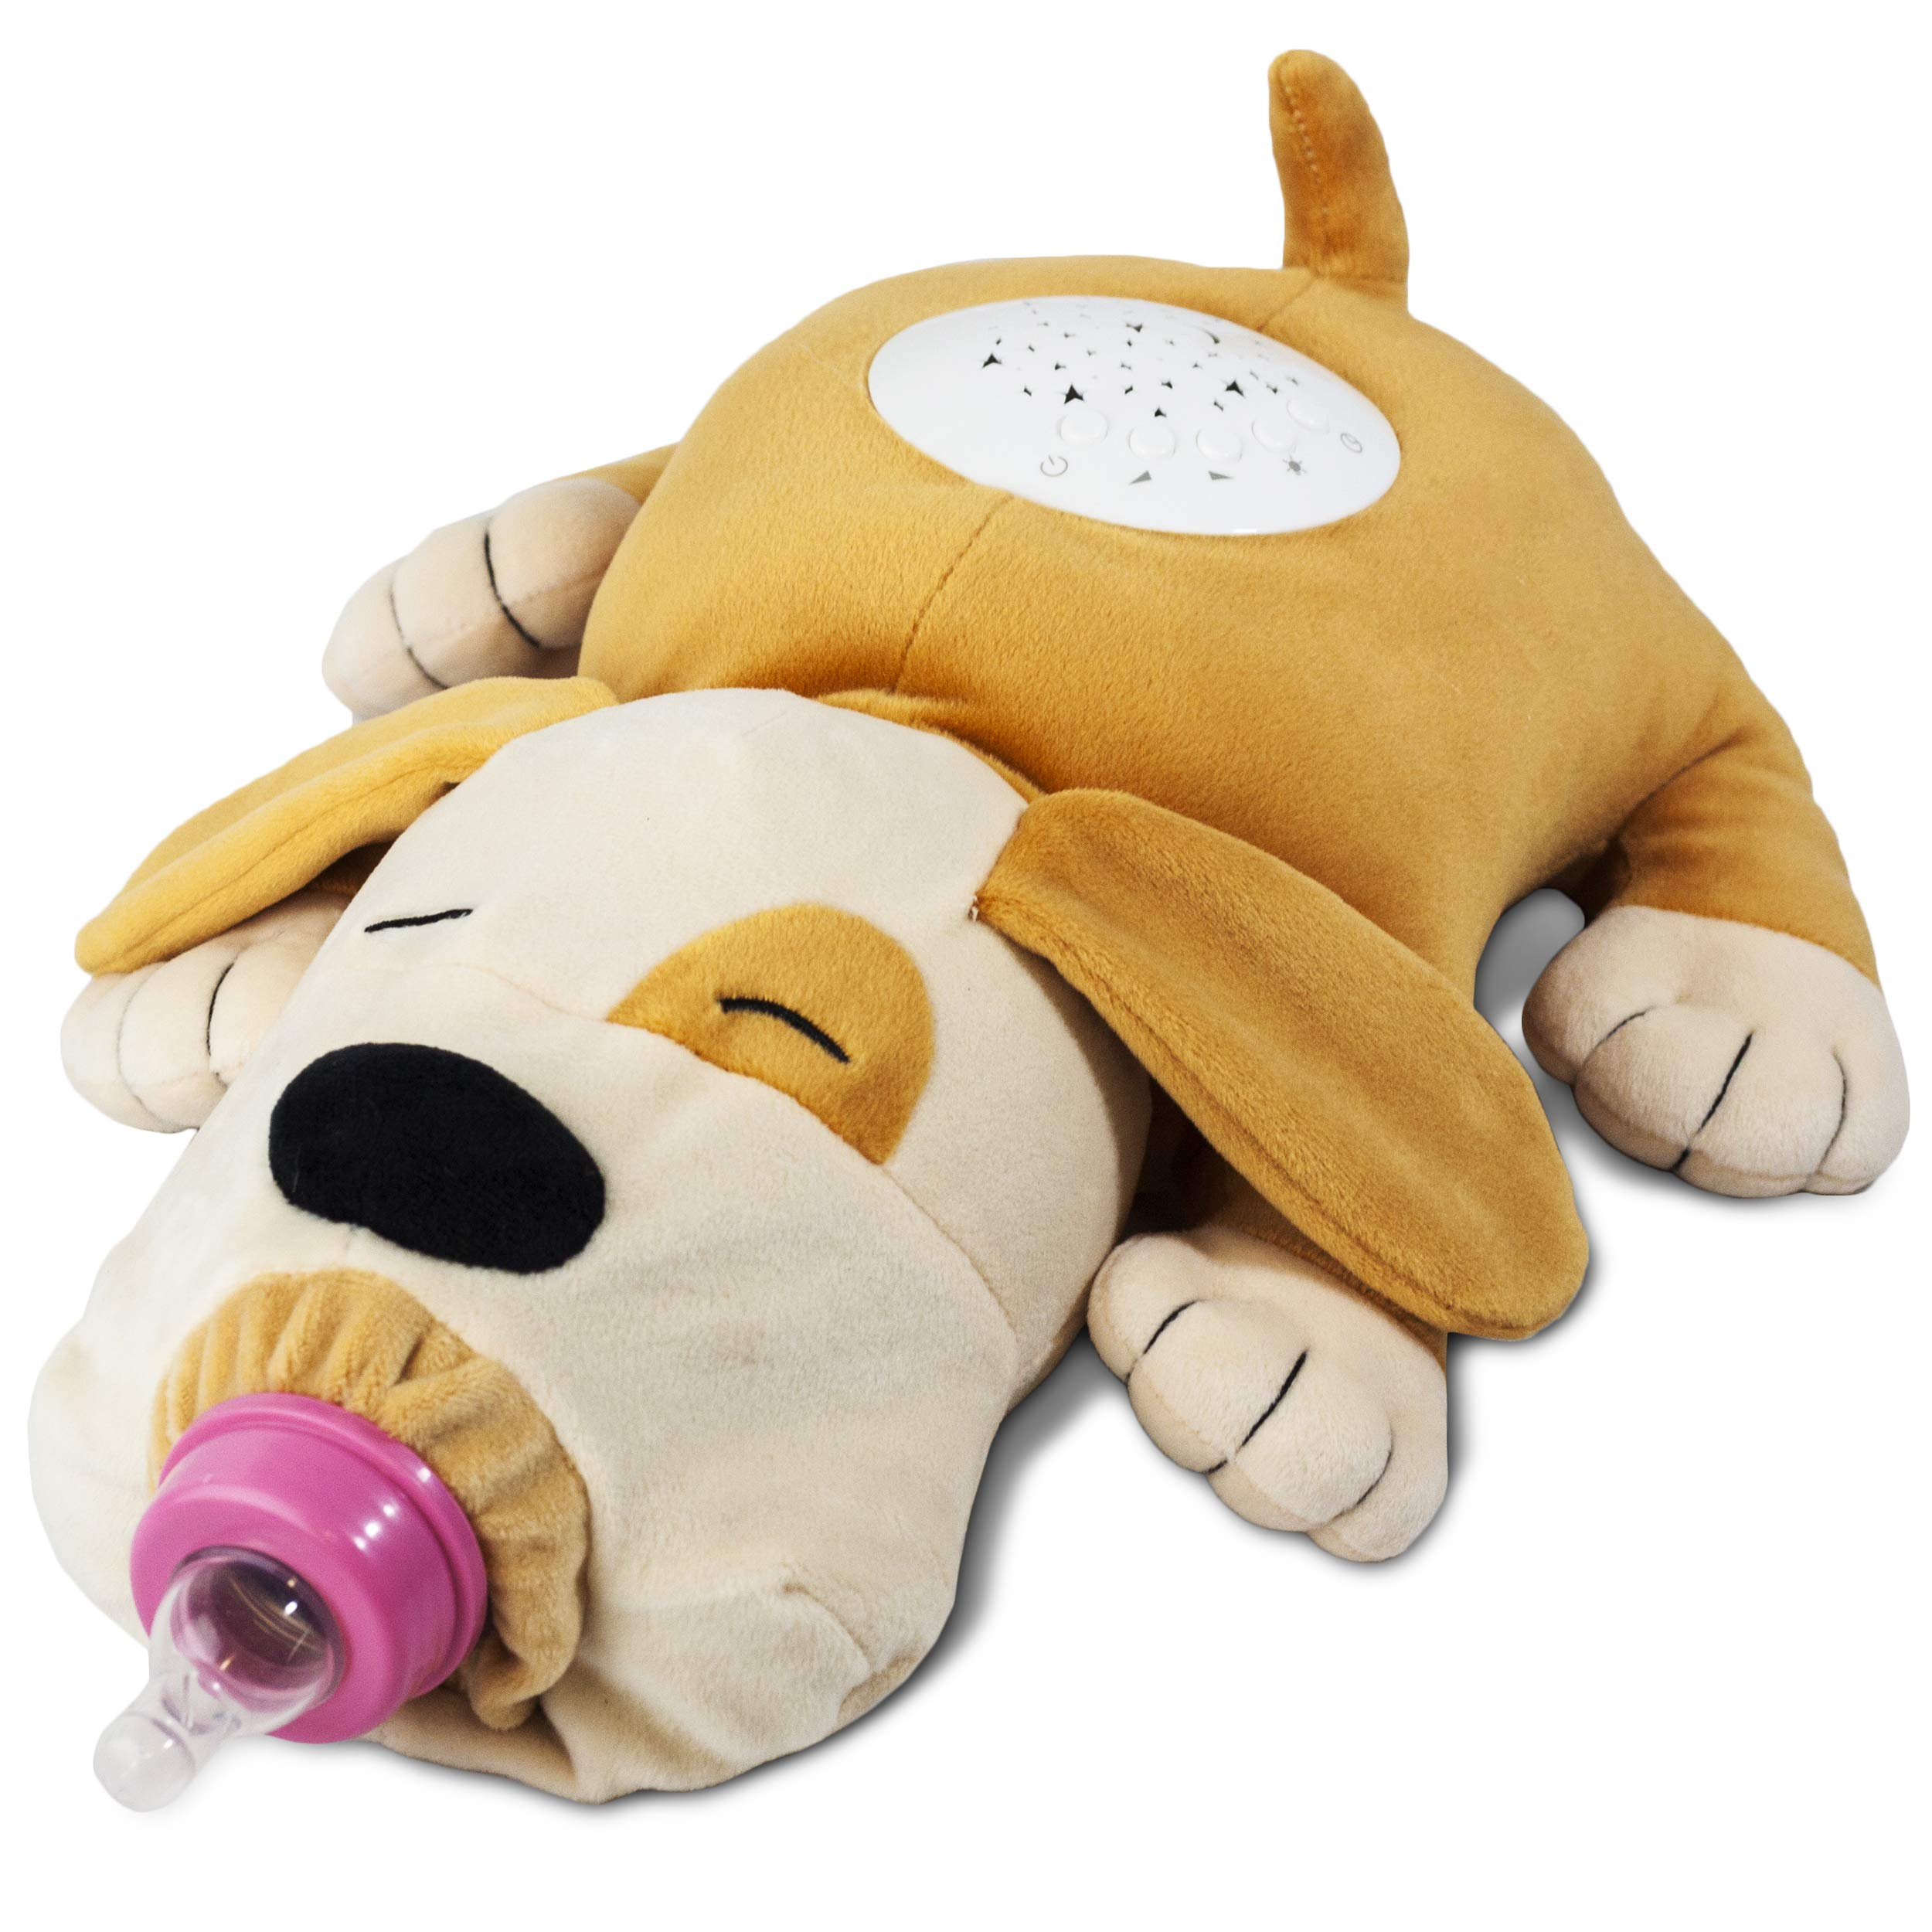 Puppy Makes Me Happy Plush Stuffed Animal toy Baby Feeder & Nursery Baby Night Light - Stimulating Pacifier Animal Crib Soother with Starlight projector Plays Music - Bottle Holder 5.6 - New SEP 2019 by A/H